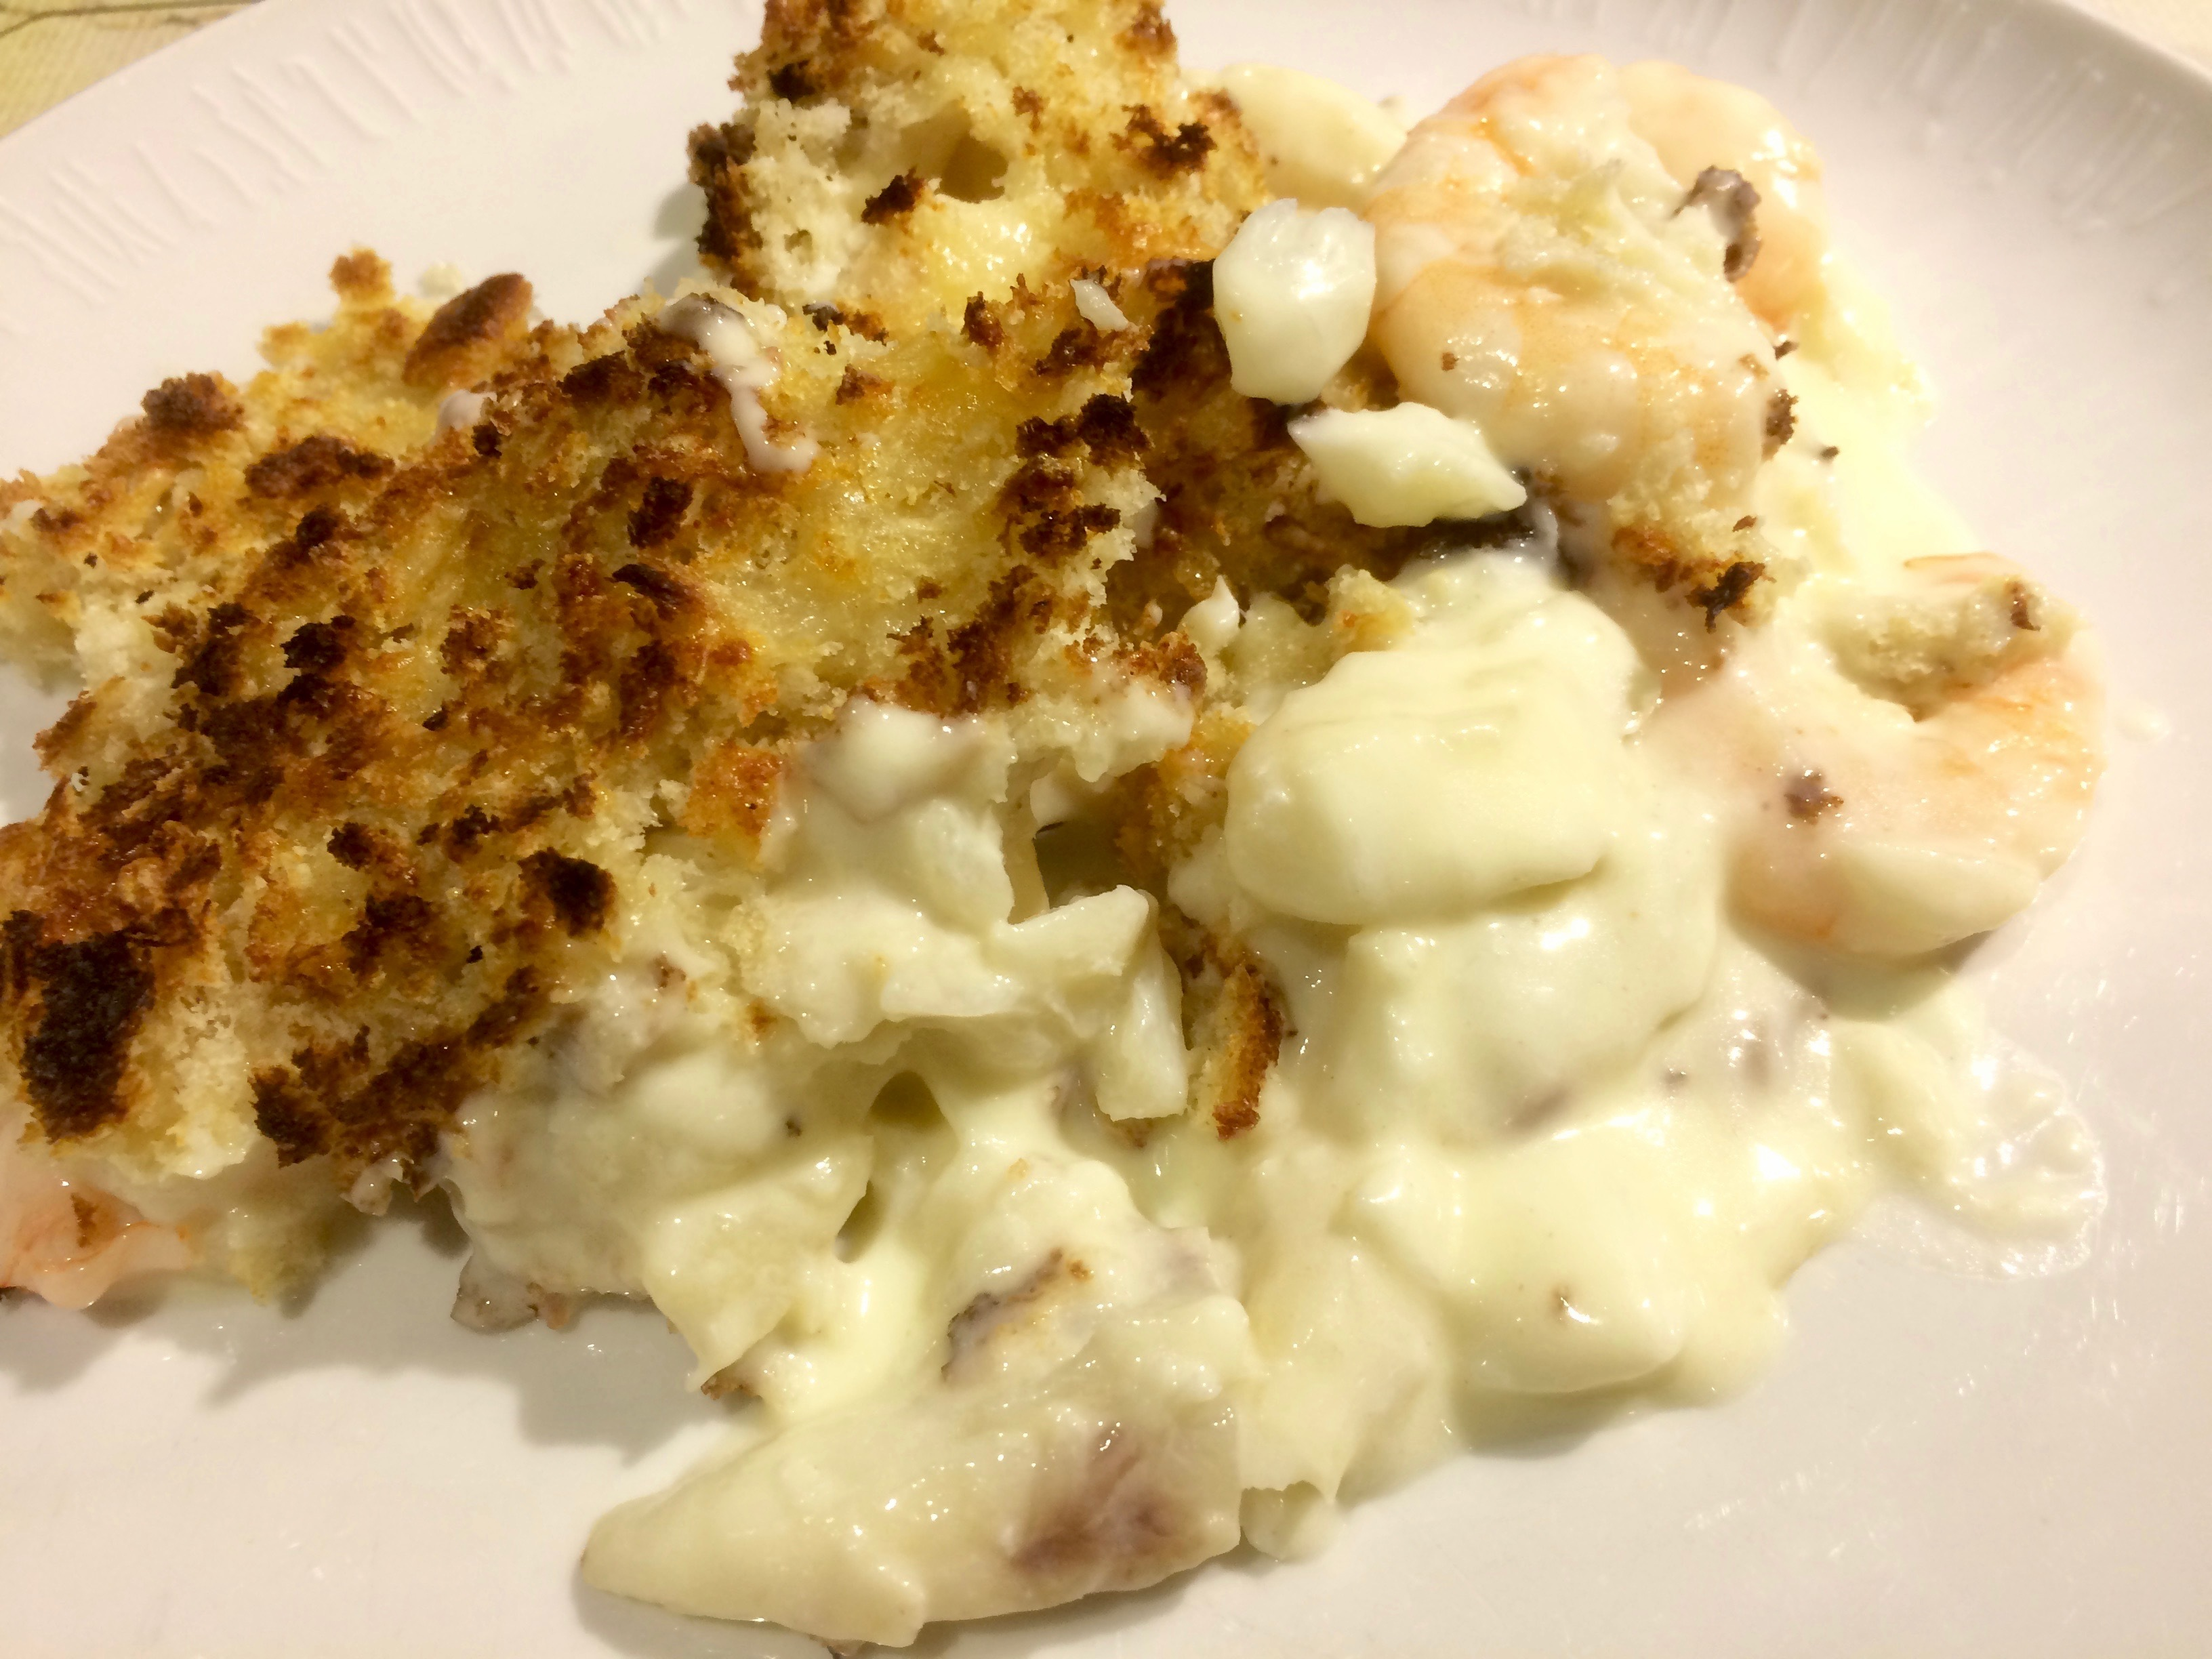 Haddock and prawn gratin